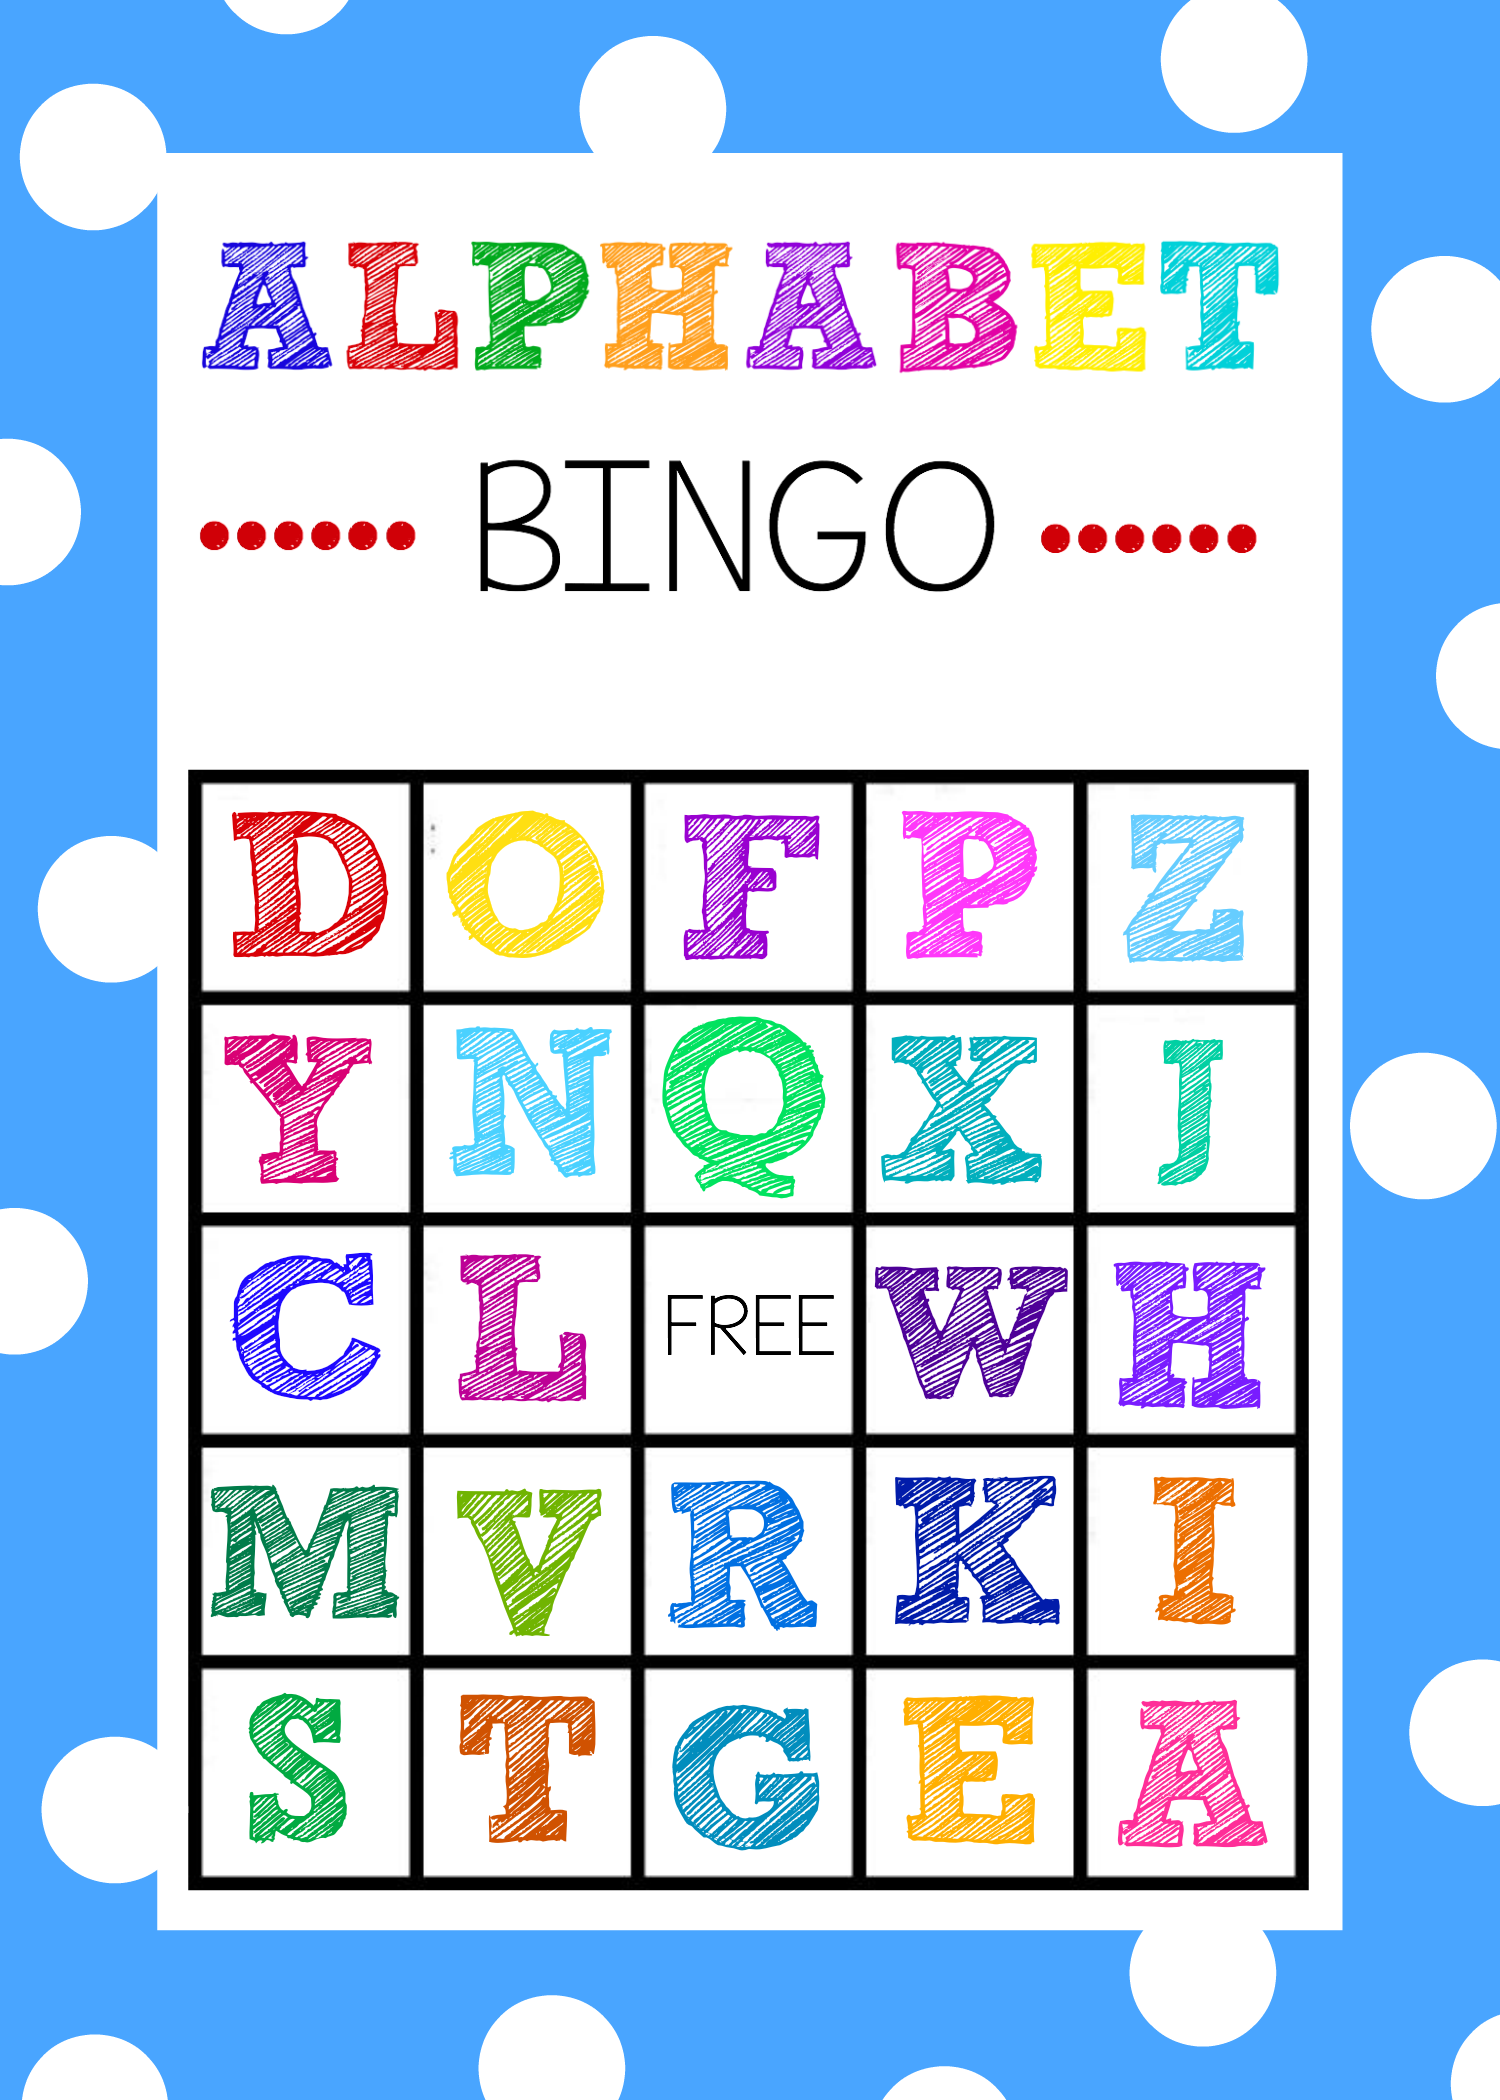 image regarding Letter Recognition Games Printable called Totally free Printable Alphabet Bingo Activity